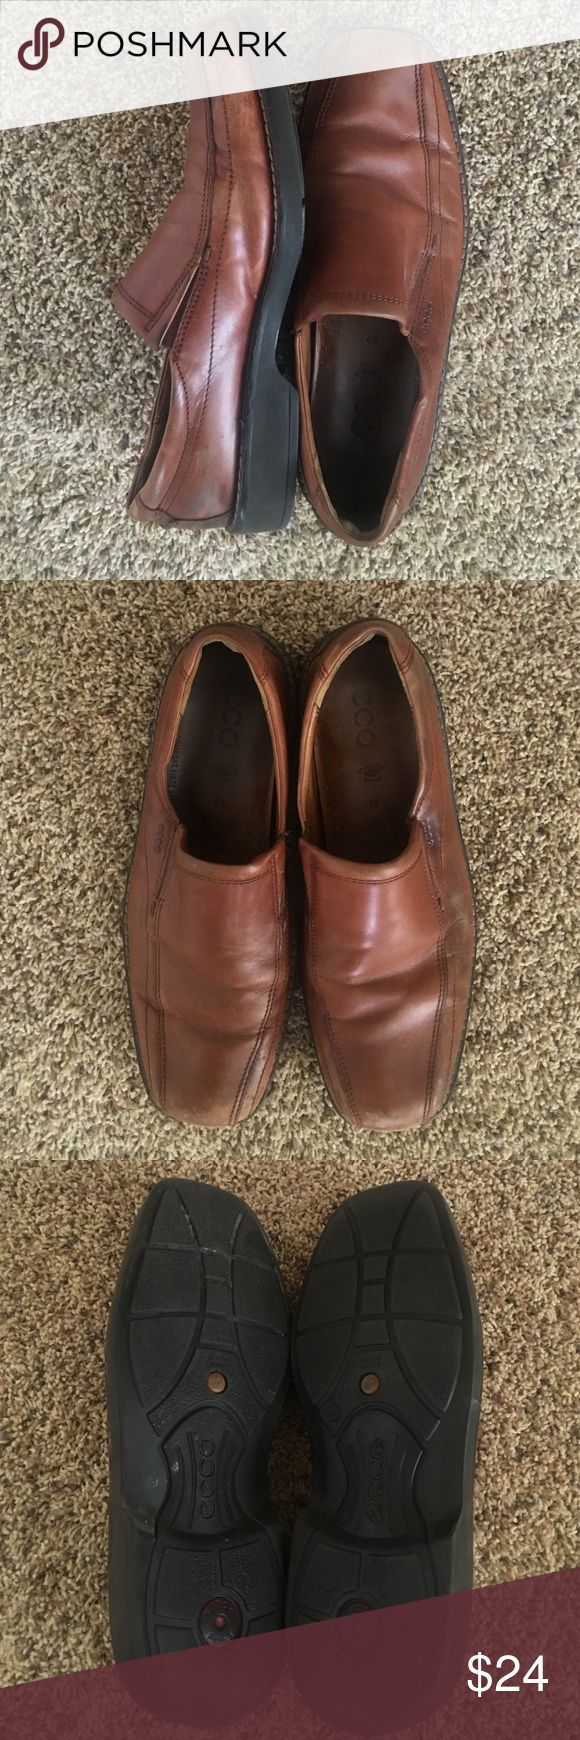 Men's Ecco slip on loafer shoe Excellent quality! With a little shoe polish these could be like new. Size 44 which is U.S size 11 Ecco Shoes Loafers & Slip-Ons